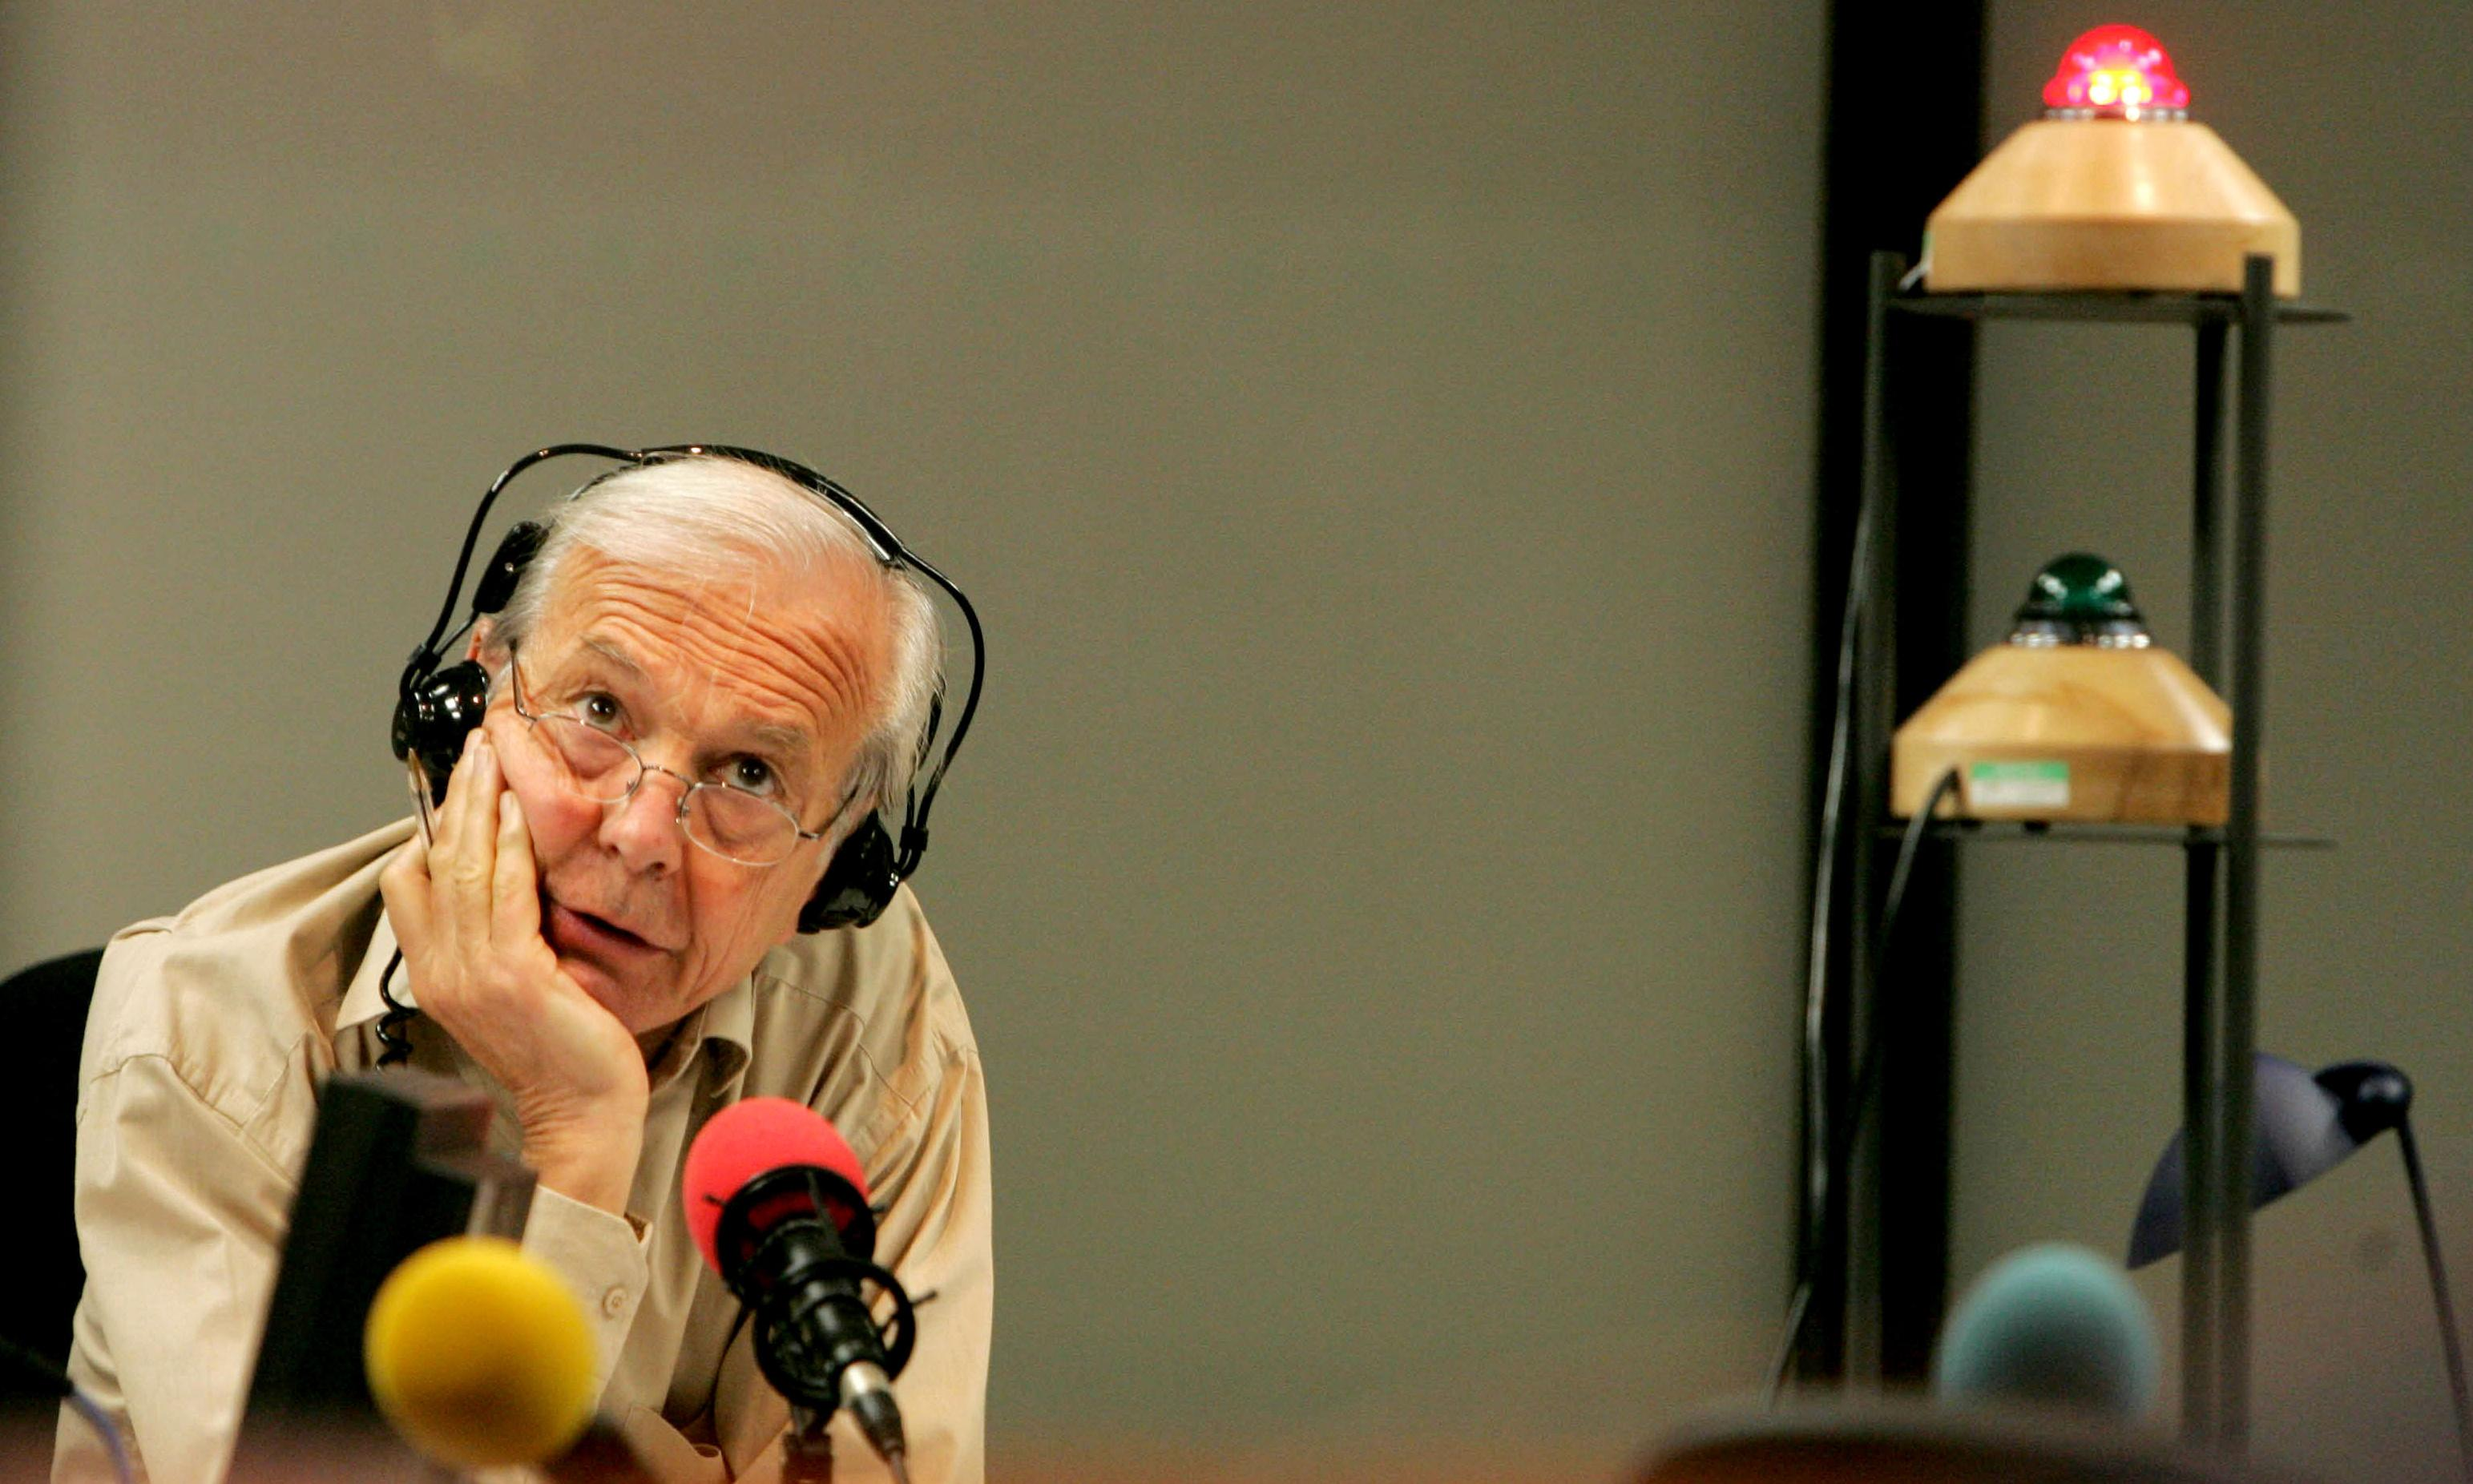 Rows, bloopers and scoops: John Humphrys' 32 years at Today